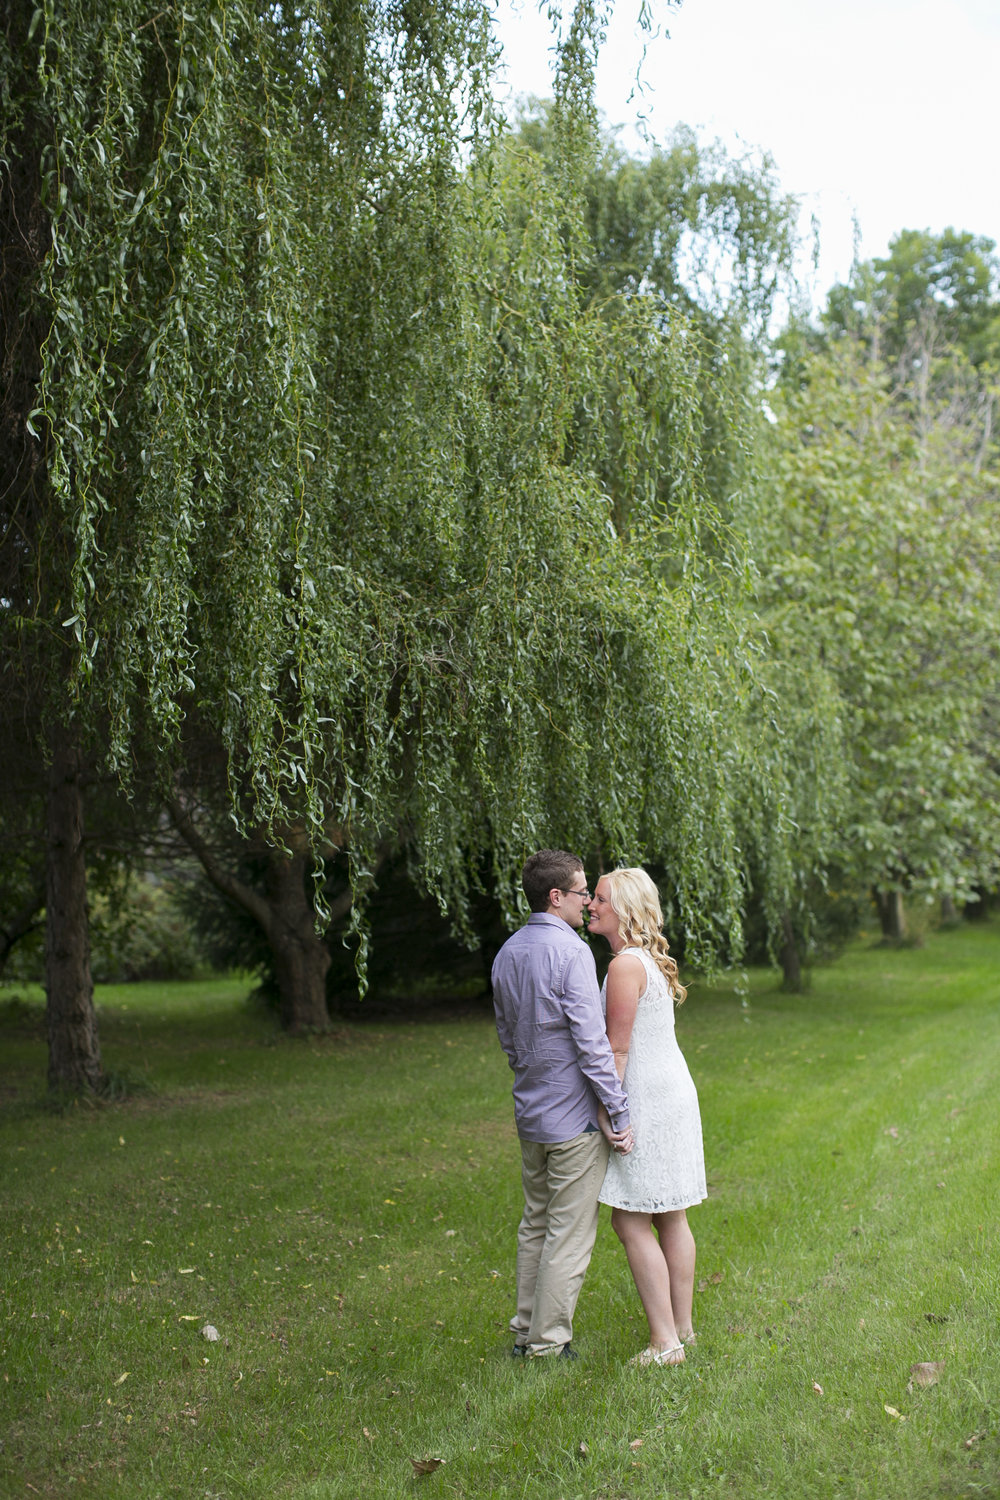 Niagara-on-the-Lake-Engagement-photos-by-Philosophy-Studios-006.JPG